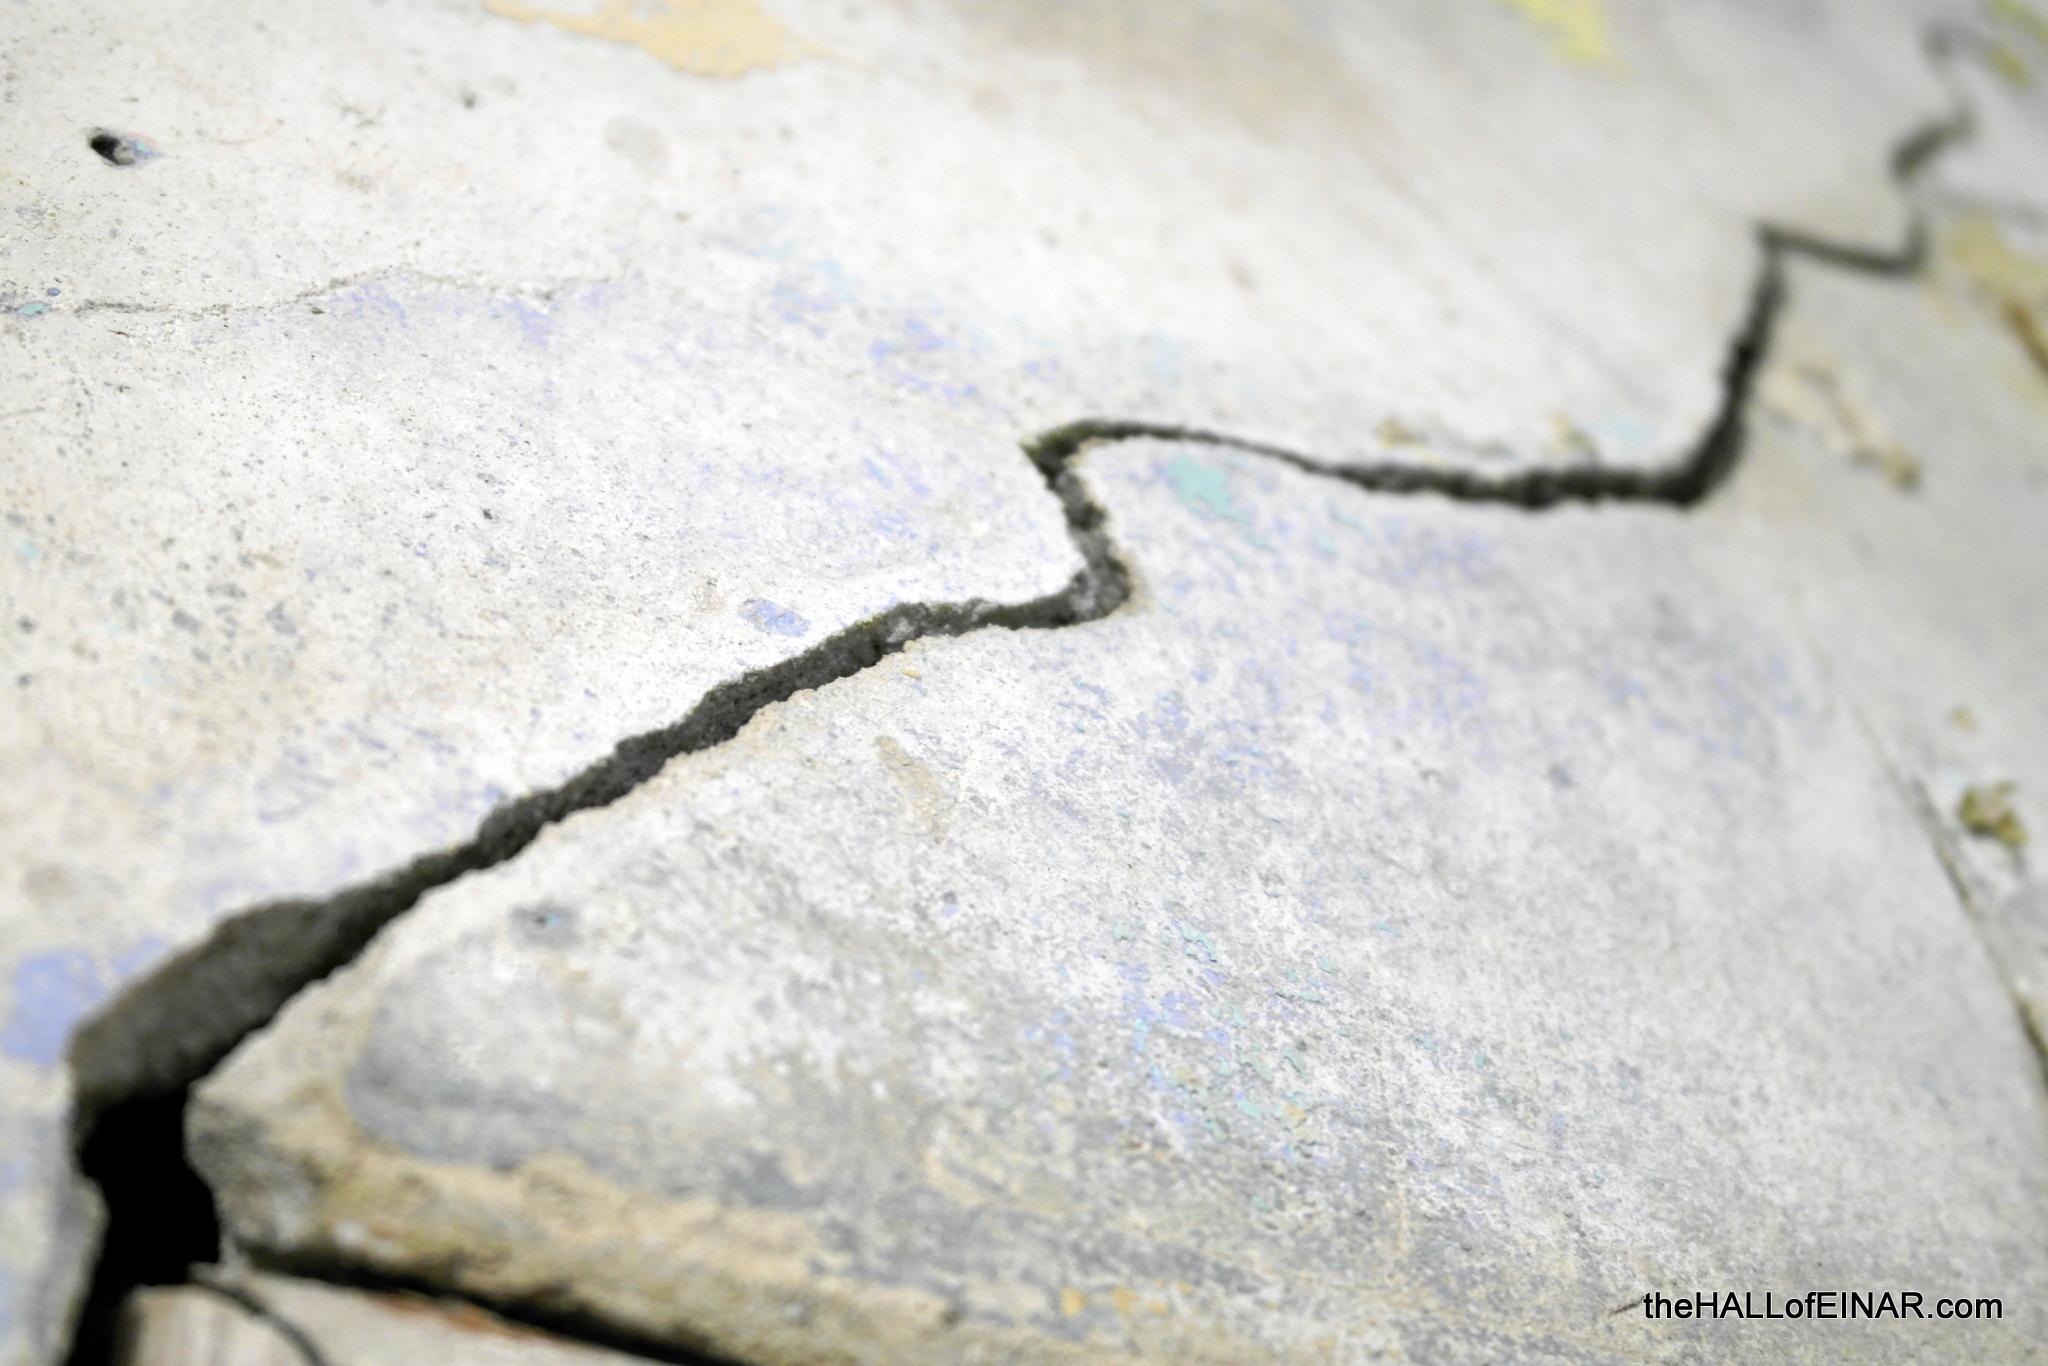 The crack in the wall - photograph (c) David Bailey (not the) - The Hall of Einar